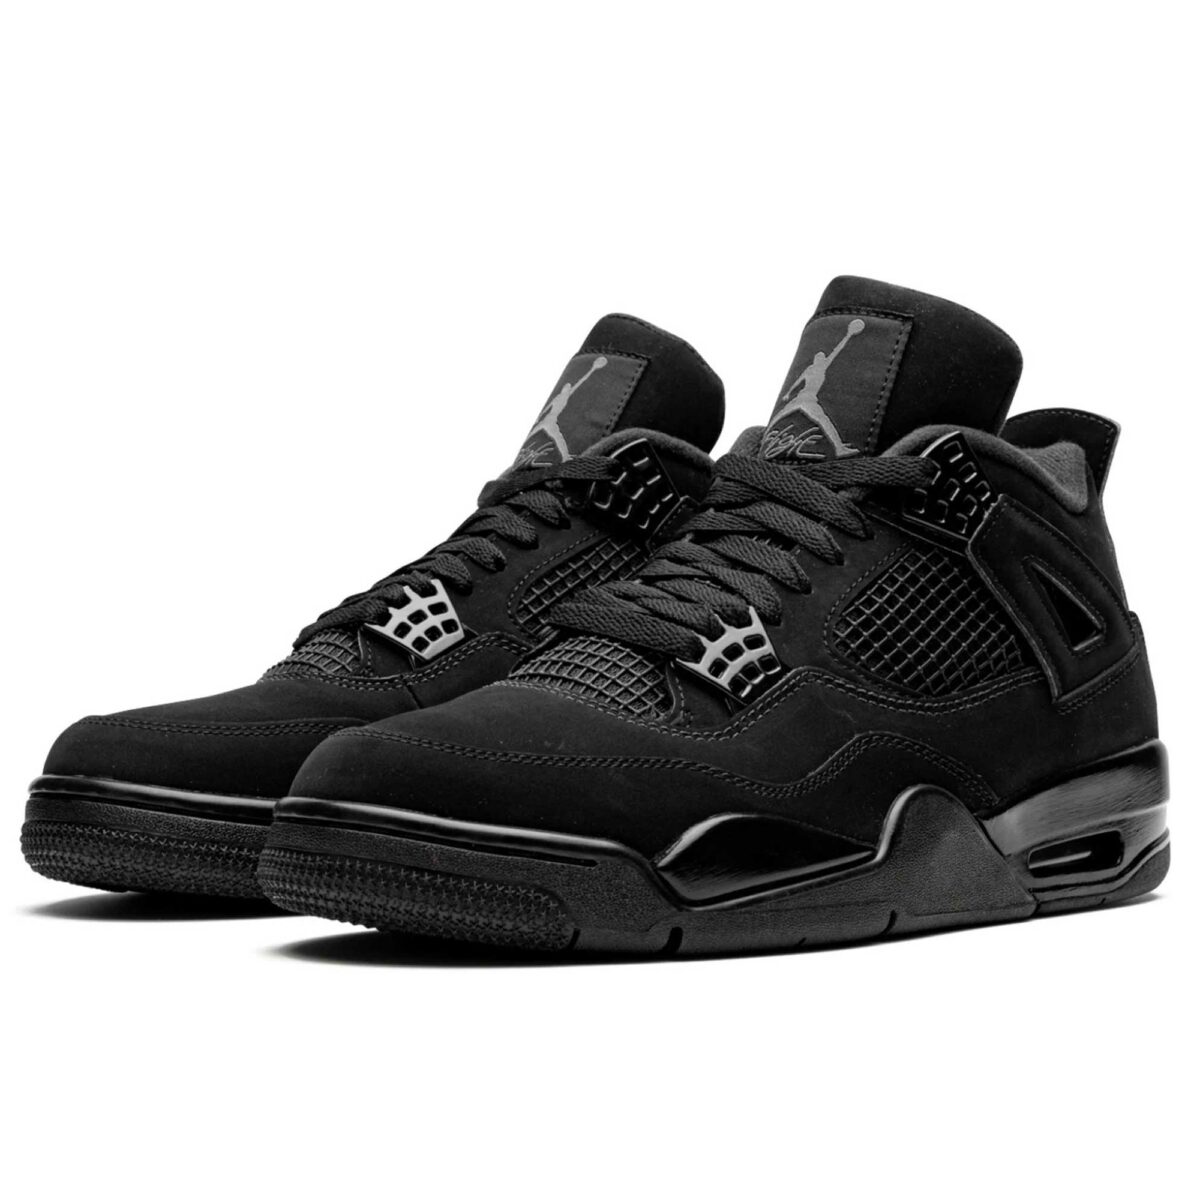 nike air Jordan 4 retro black cat 2020 CU1110_010 купить